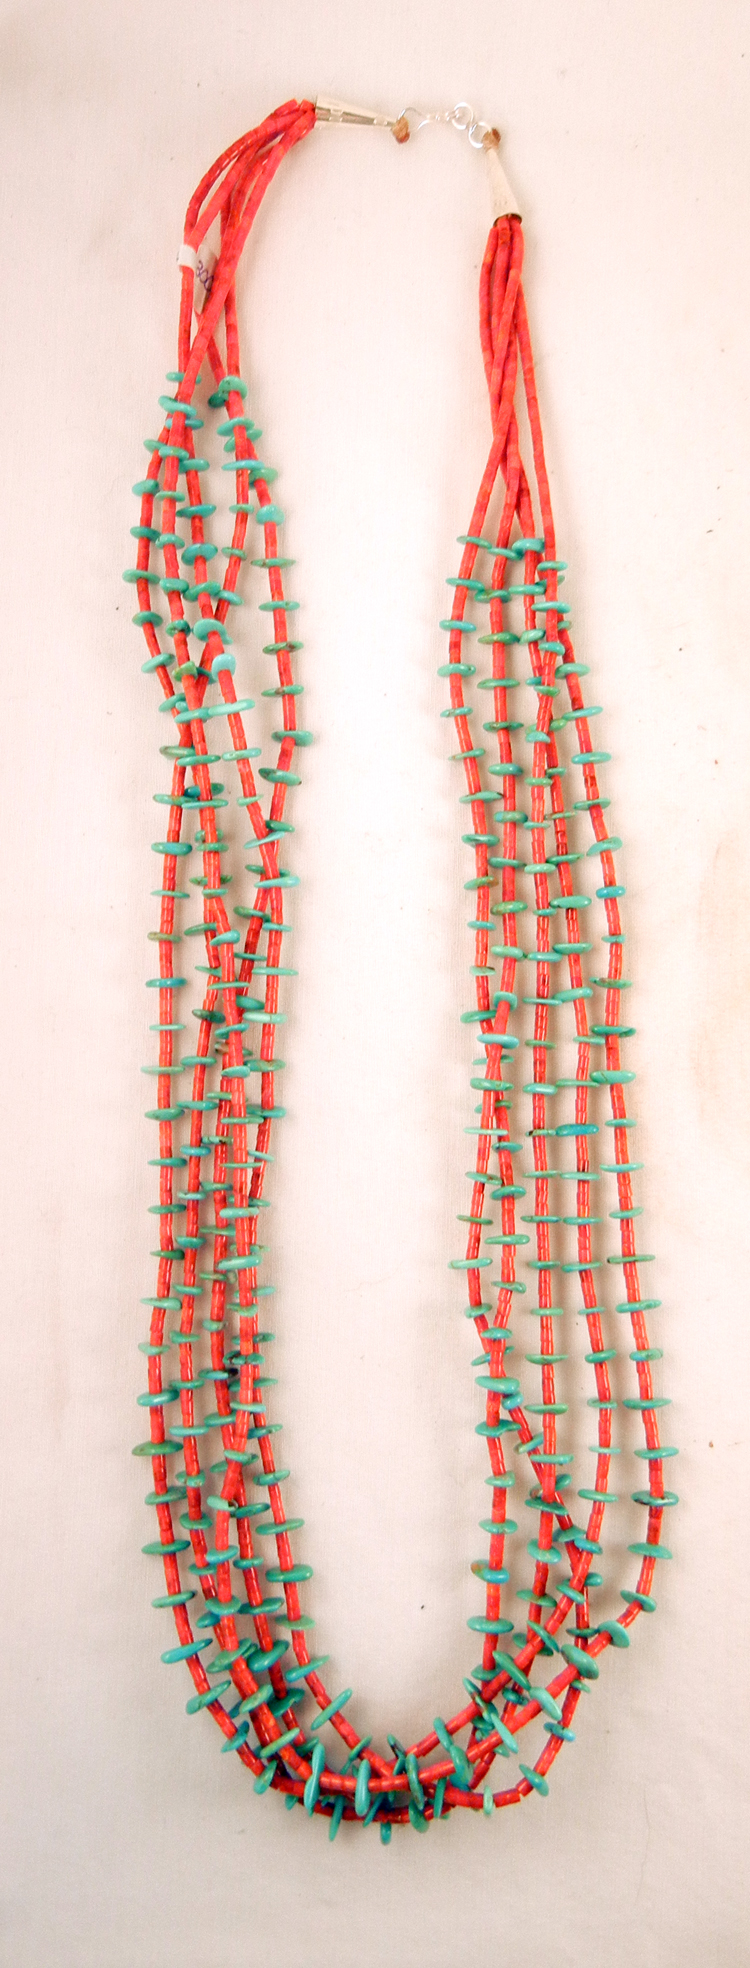 Santo Domingo Jeanette Calabaza 5 Strand Coral Heishi and Turquoise Nugget Necklace